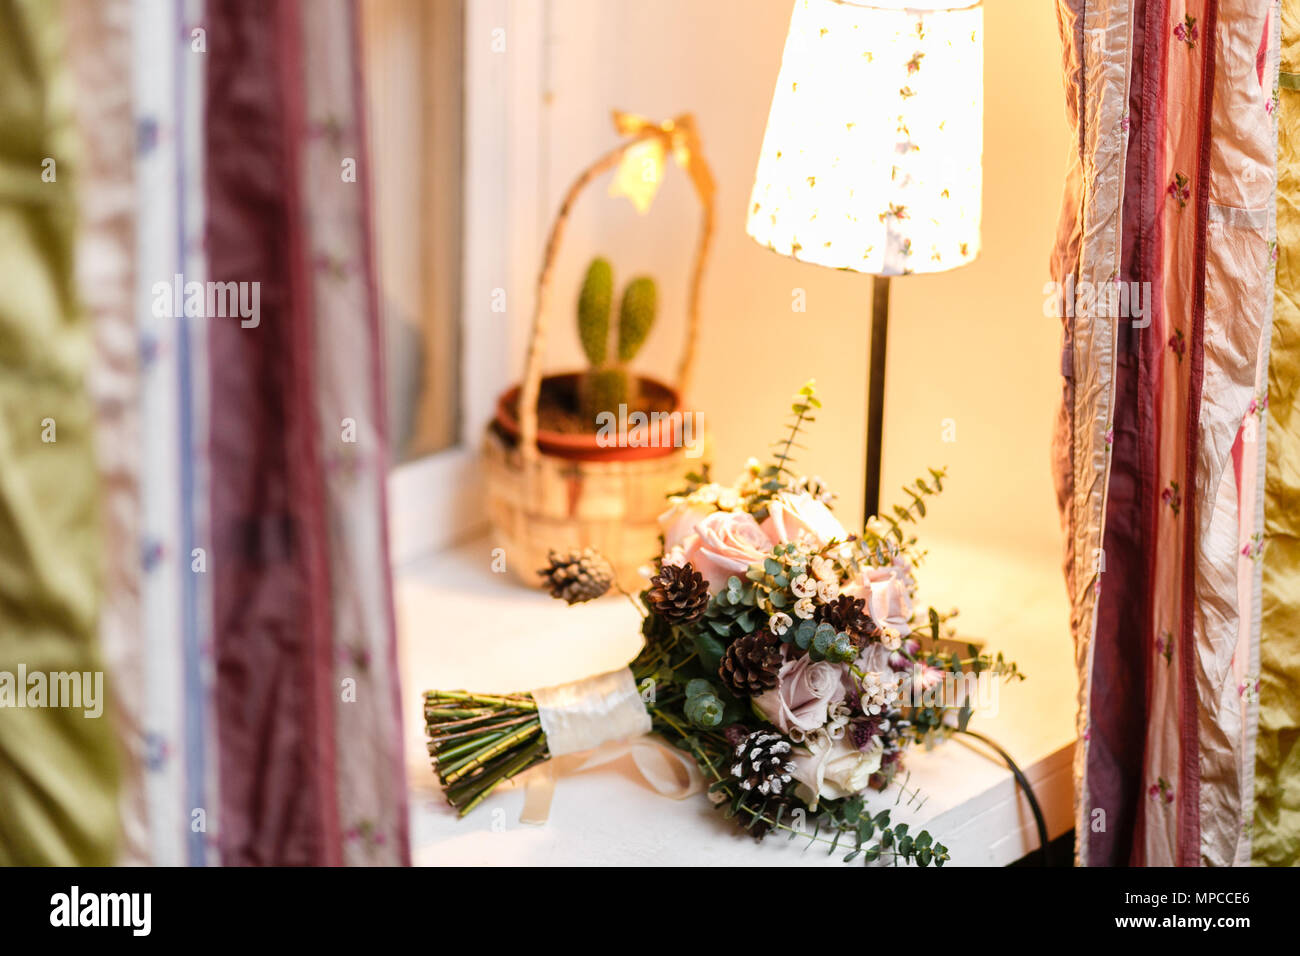 Wedding bride bouquet of fresh floral. White ranunculus flowers on table. warm evening atmosphere - Stock Image